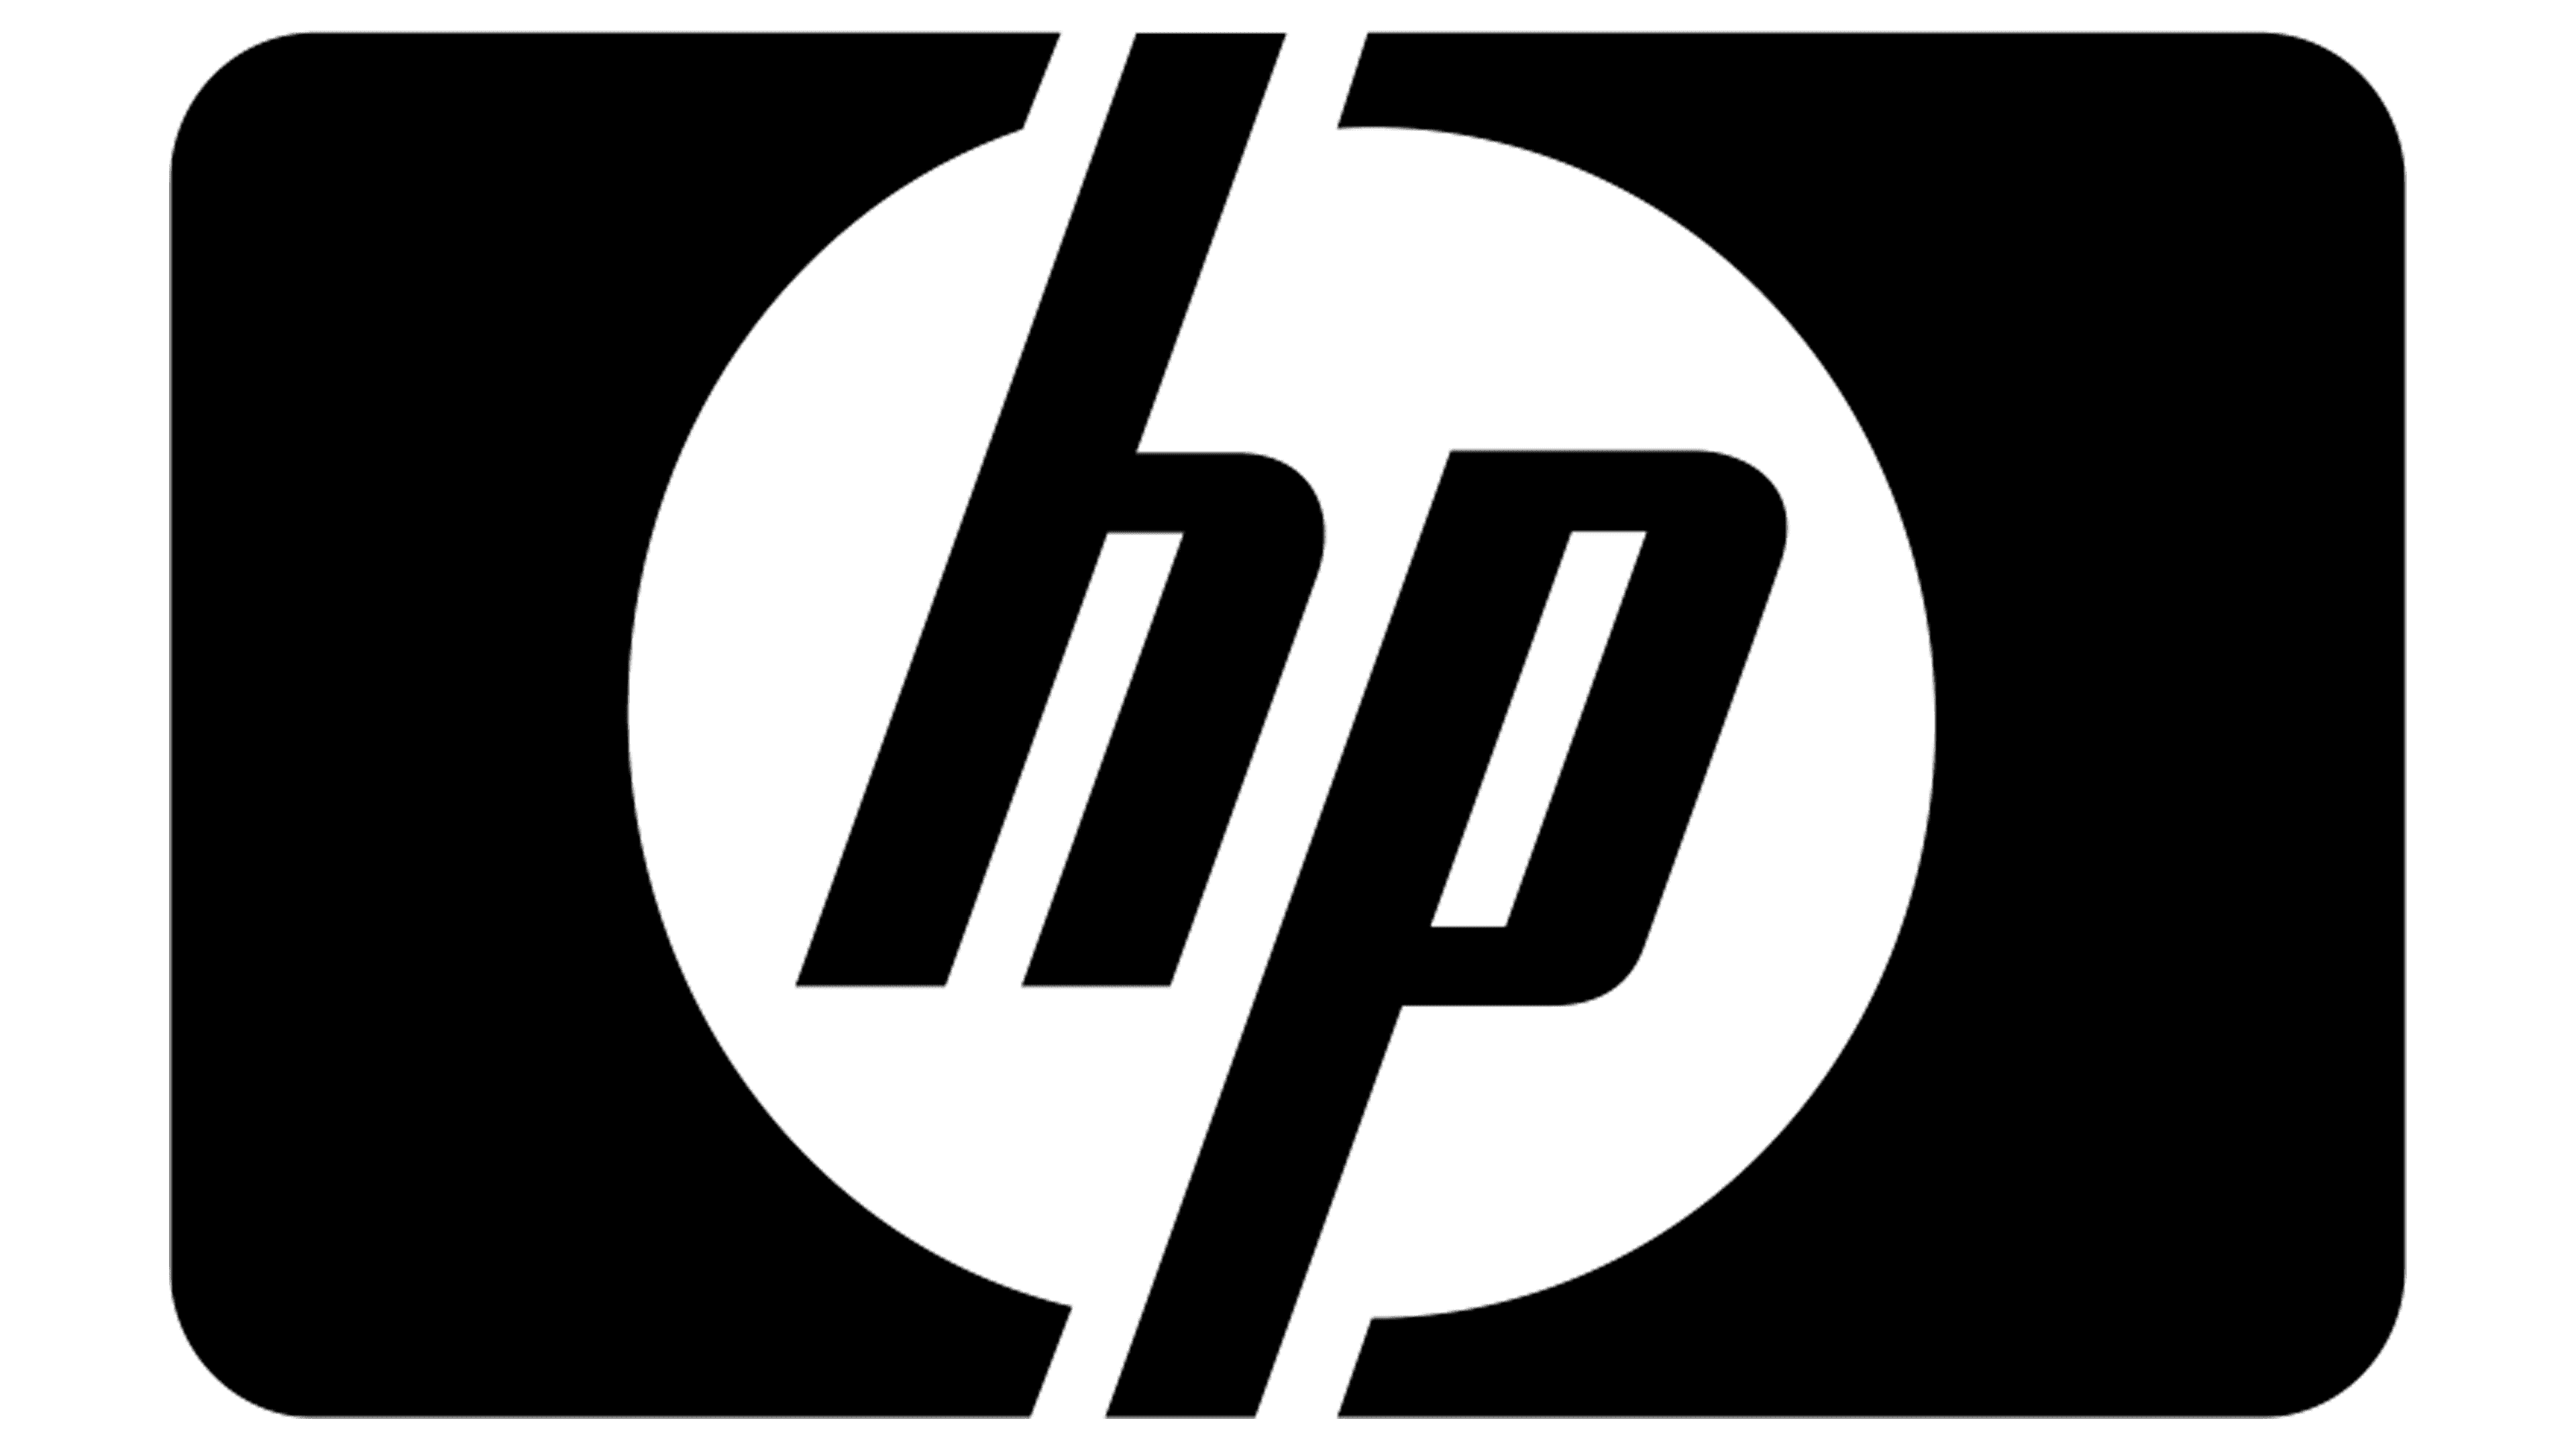 HP Logo, PNG, Symbol, History, Meaning